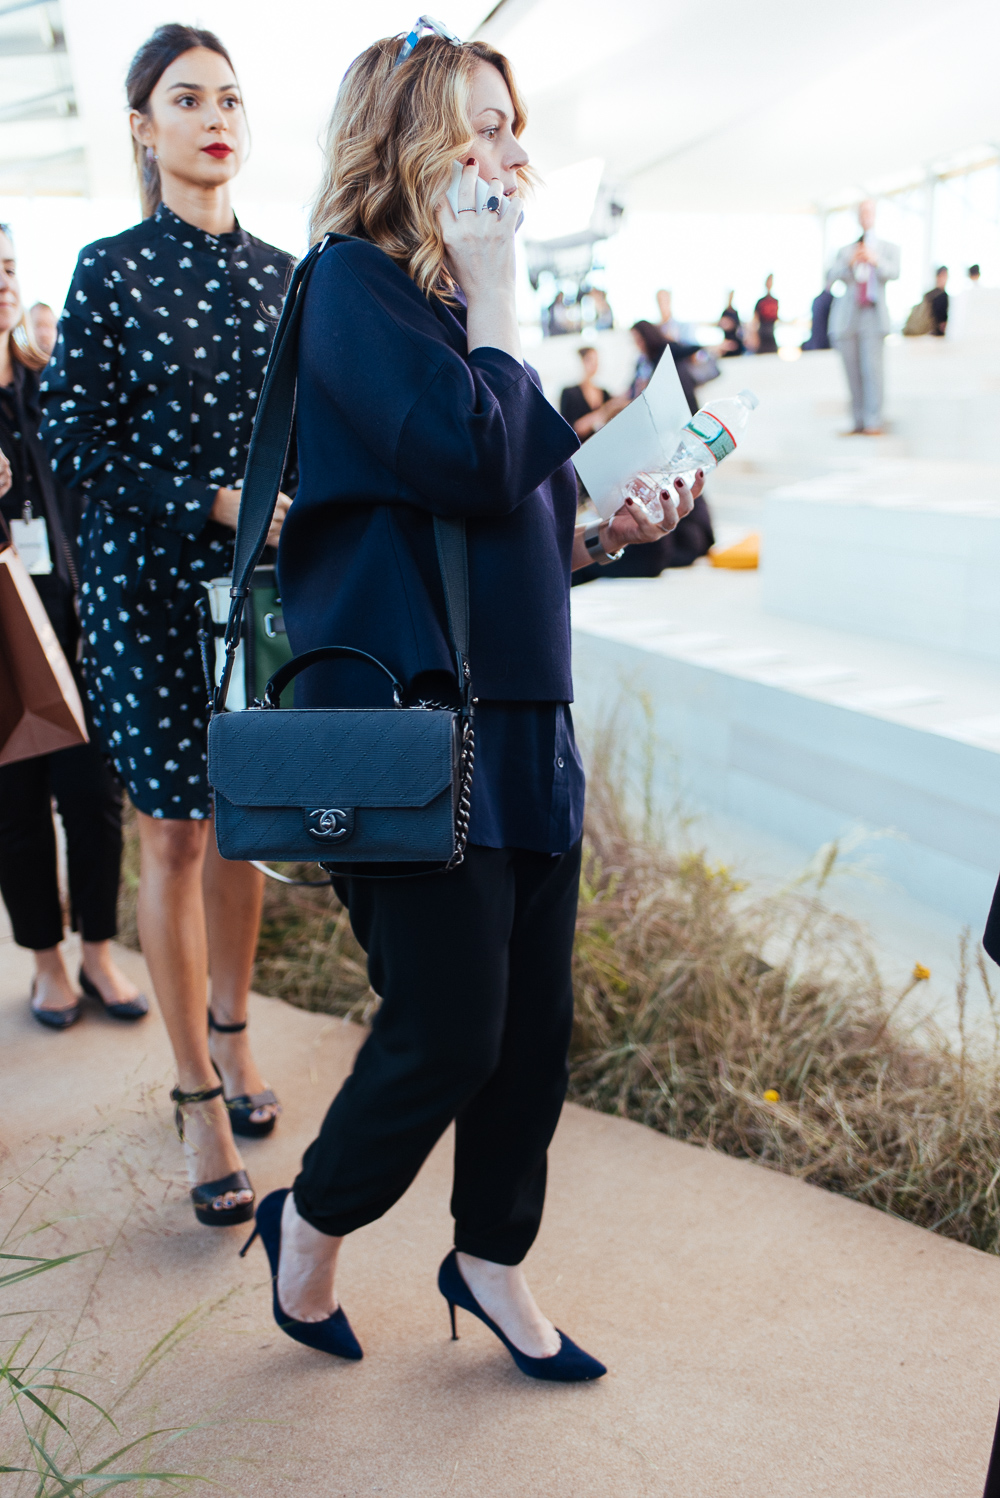 37ef049bbd24 The Best Bags of NYFW Spring 2016 Street Style – Day 6 - Page 2 of ...